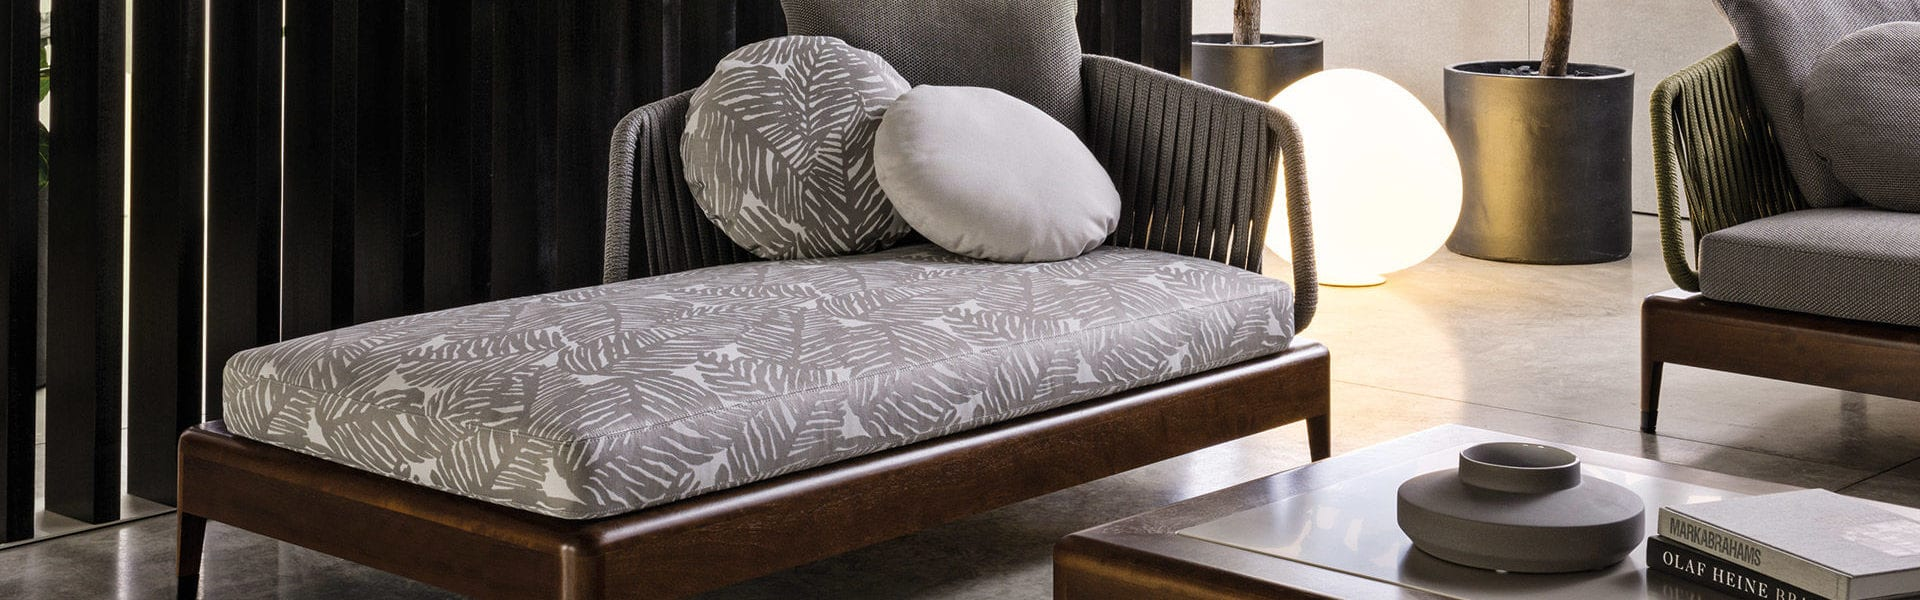 Indiana Chaise Longue